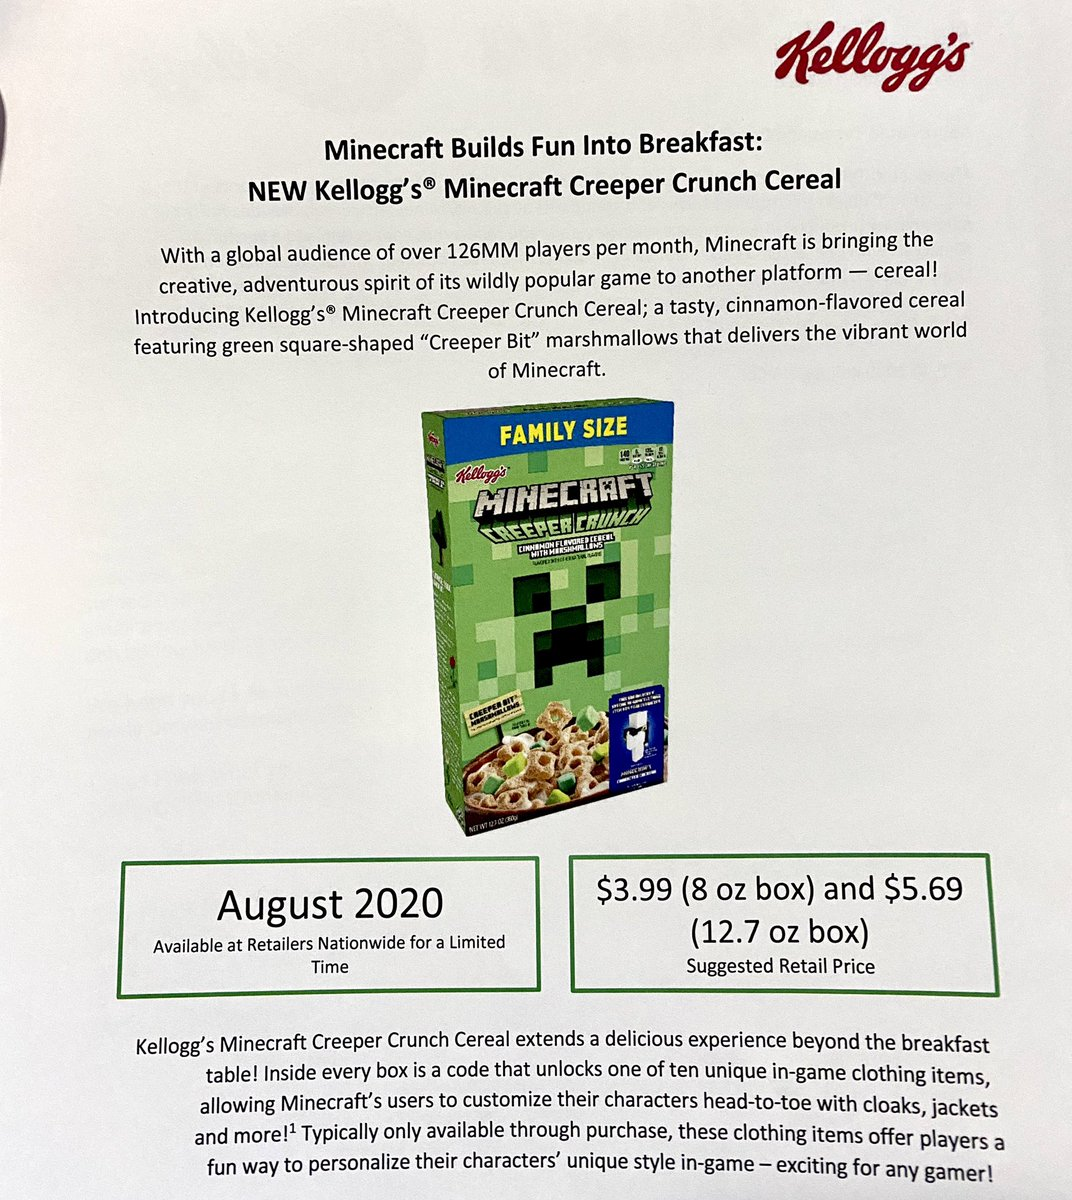 Jason Liebig Pa Twitter It S Minecraft Creeper Crunch Cereal Thanks To Kelloggsus For Sending Me Out A Preview Of This It S Arriving In Stores In August So Basically Tomorrow Minecraft Has